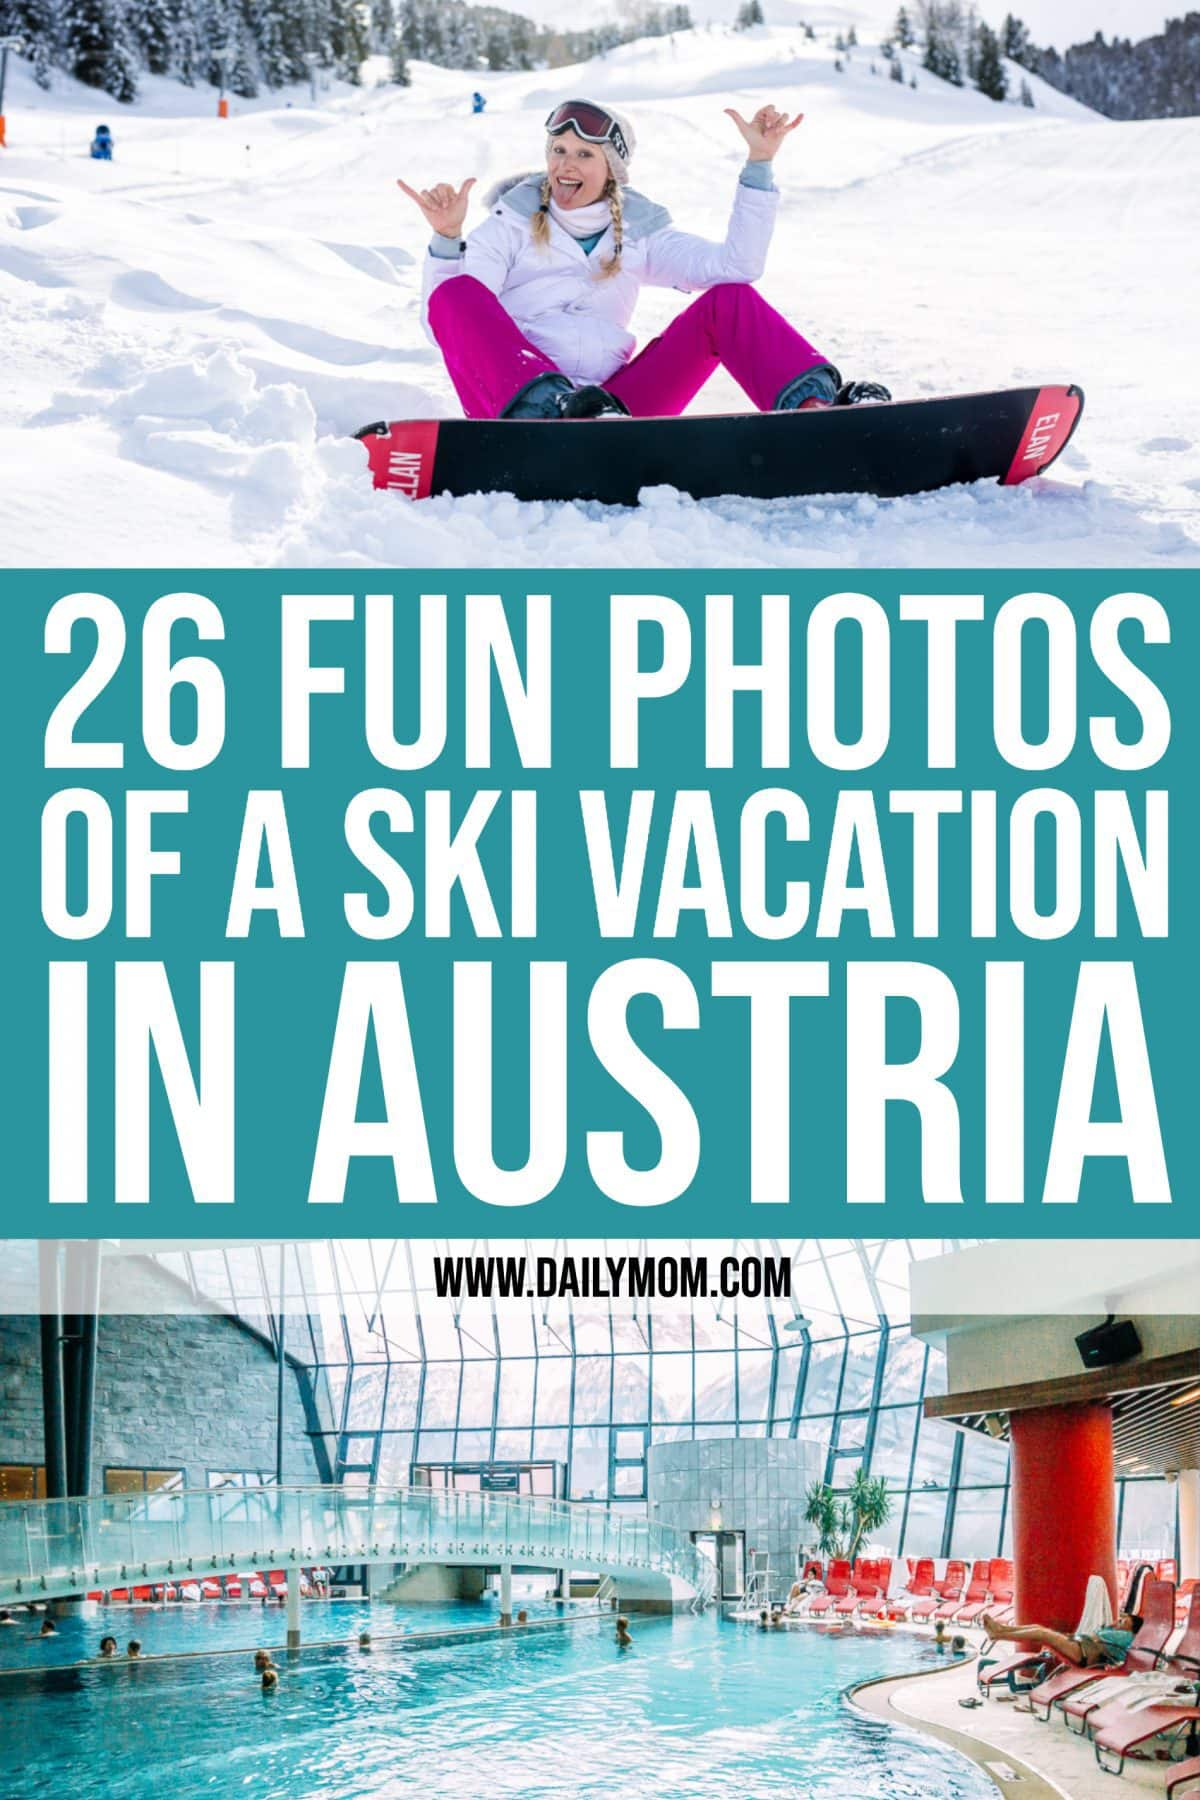 26 Fun Photos Of A Ski Vacation In Austria